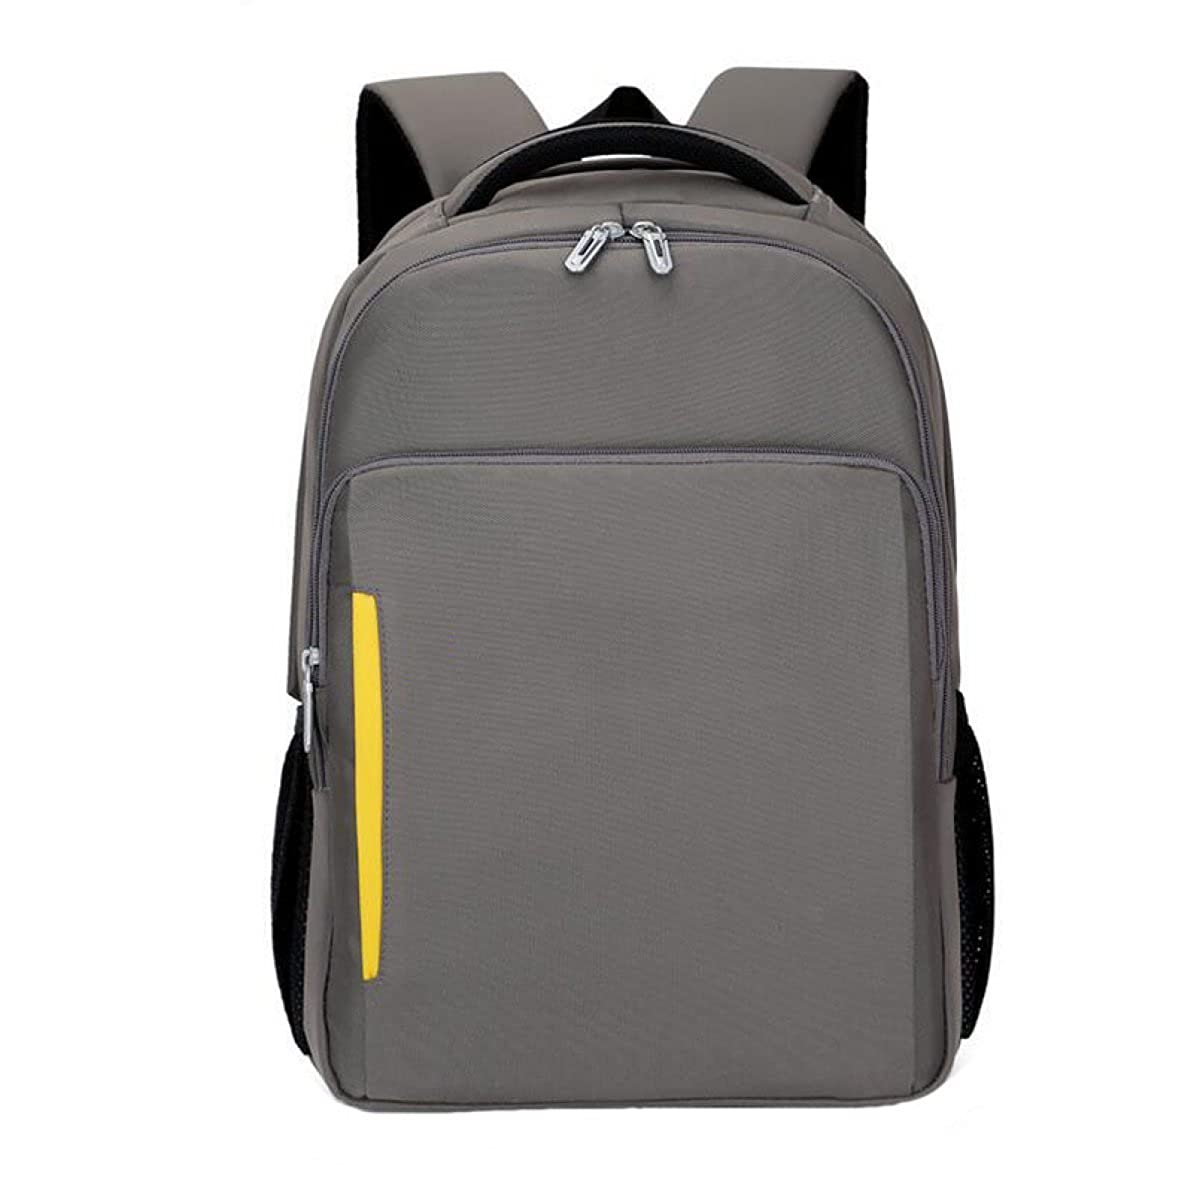 Grey One Size Shoulder Bag Anti  Pack Bag Student Business Computer Pack USB Rechargeable Backpack